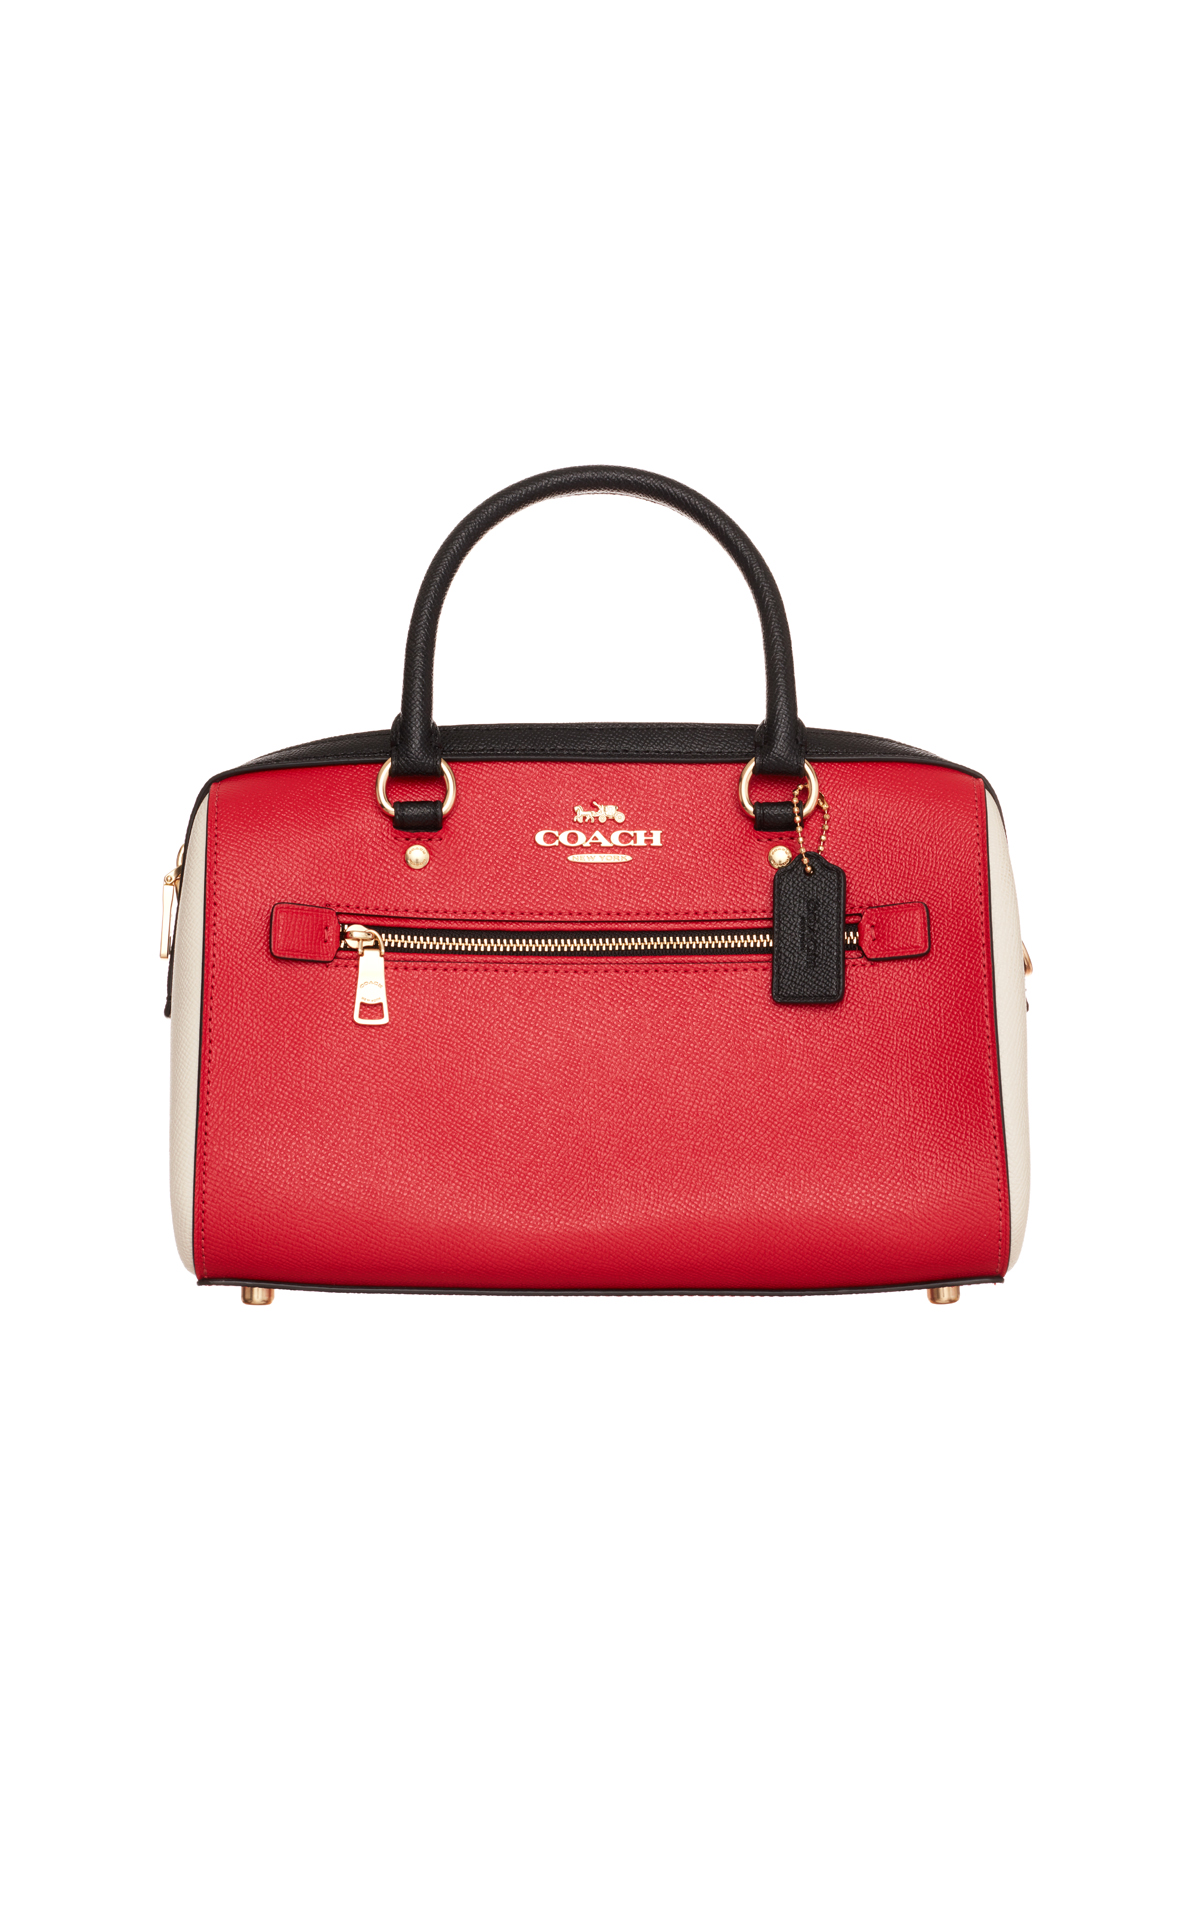 Coach Red rowan satchel from Bicester Village